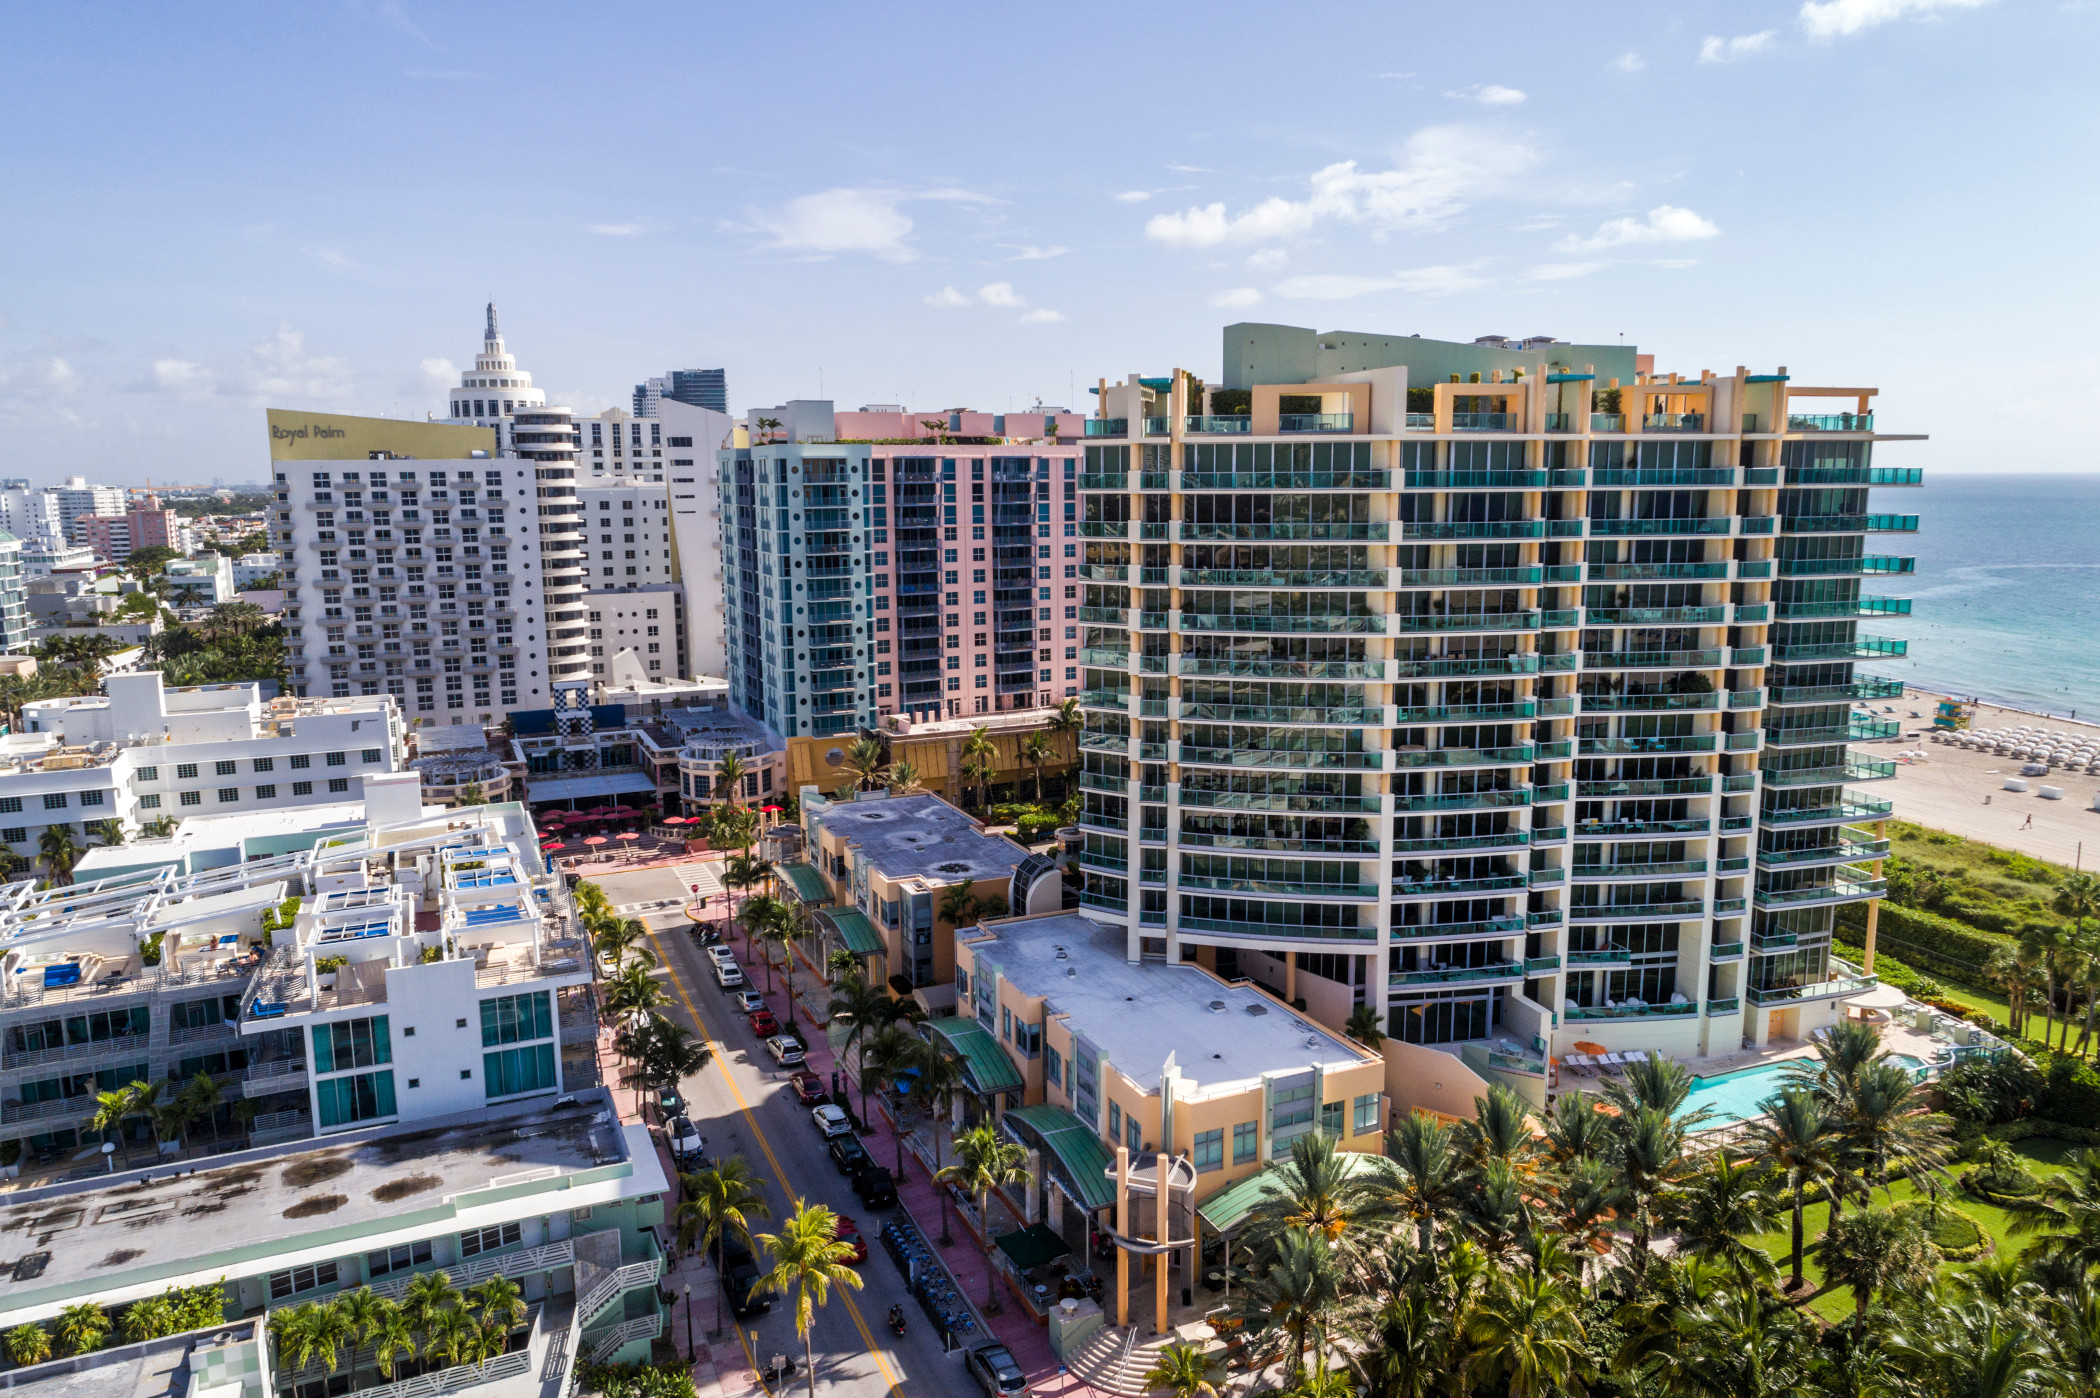 An aerial view of Miami Beach hotels and condominiums on Ocean Drive, an area that had the highest hotel occupancy among the largest U.S. tourism markets. (Getty Images)